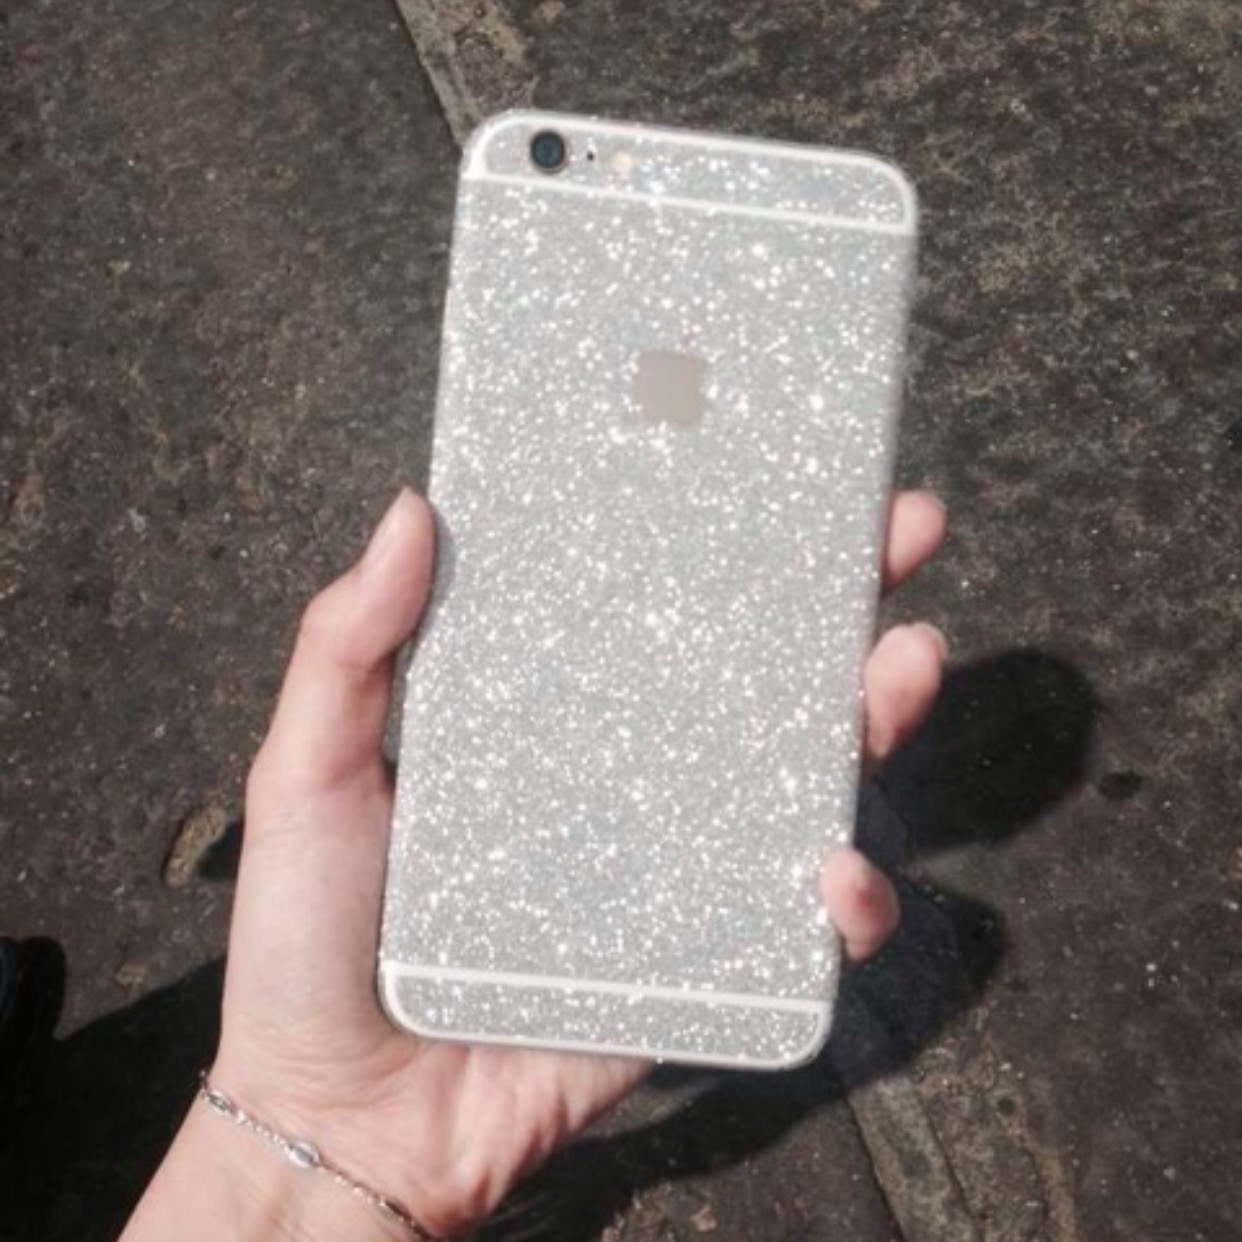 silver glitter sticker skin iphone 6 iphone 6 plus iphone 5 5s luxurious bling online store. Black Bedroom Furniture Sets. Home Design Ideas